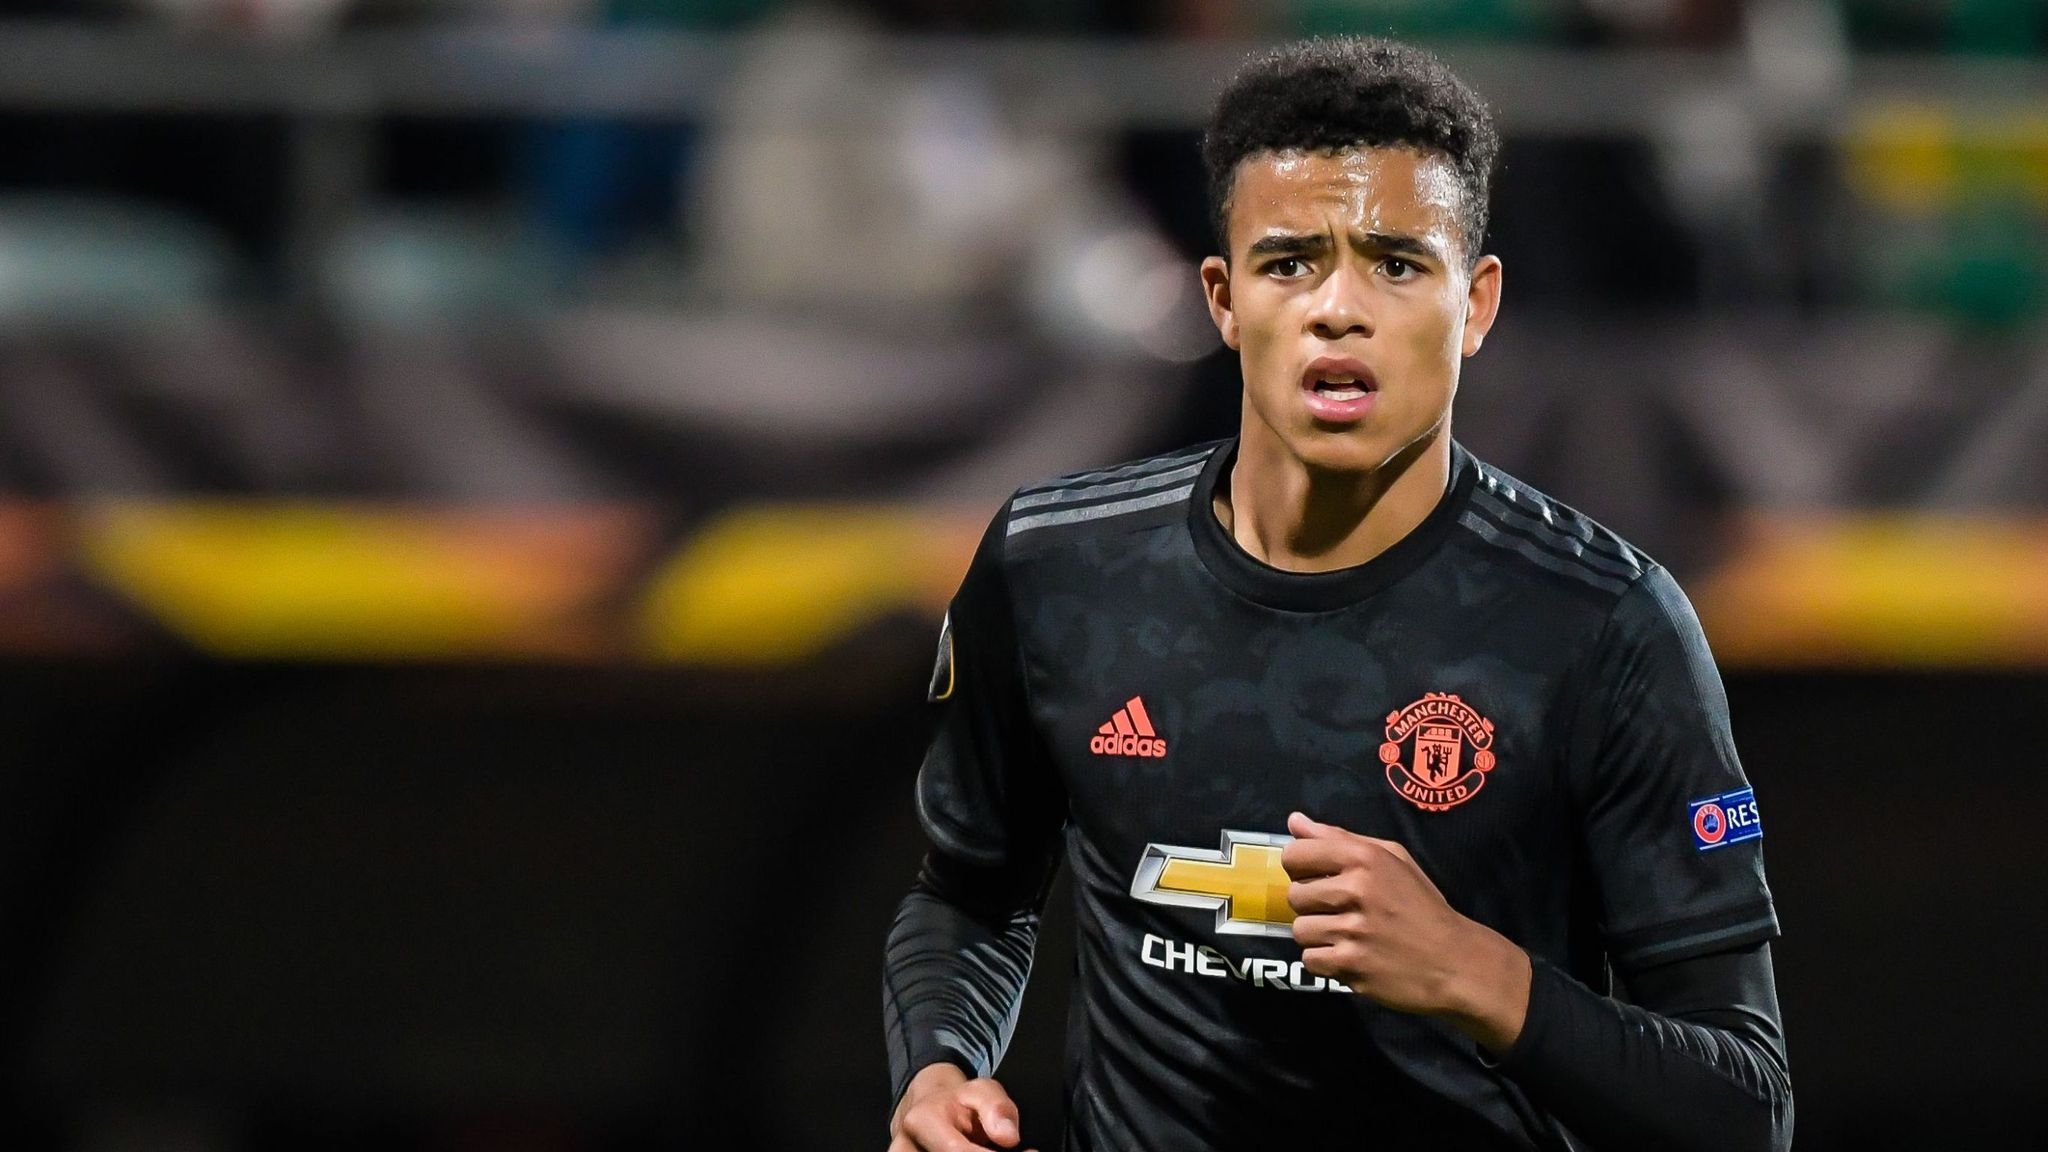 Manchester United youngsters need patience to develop, says Nicky Butt